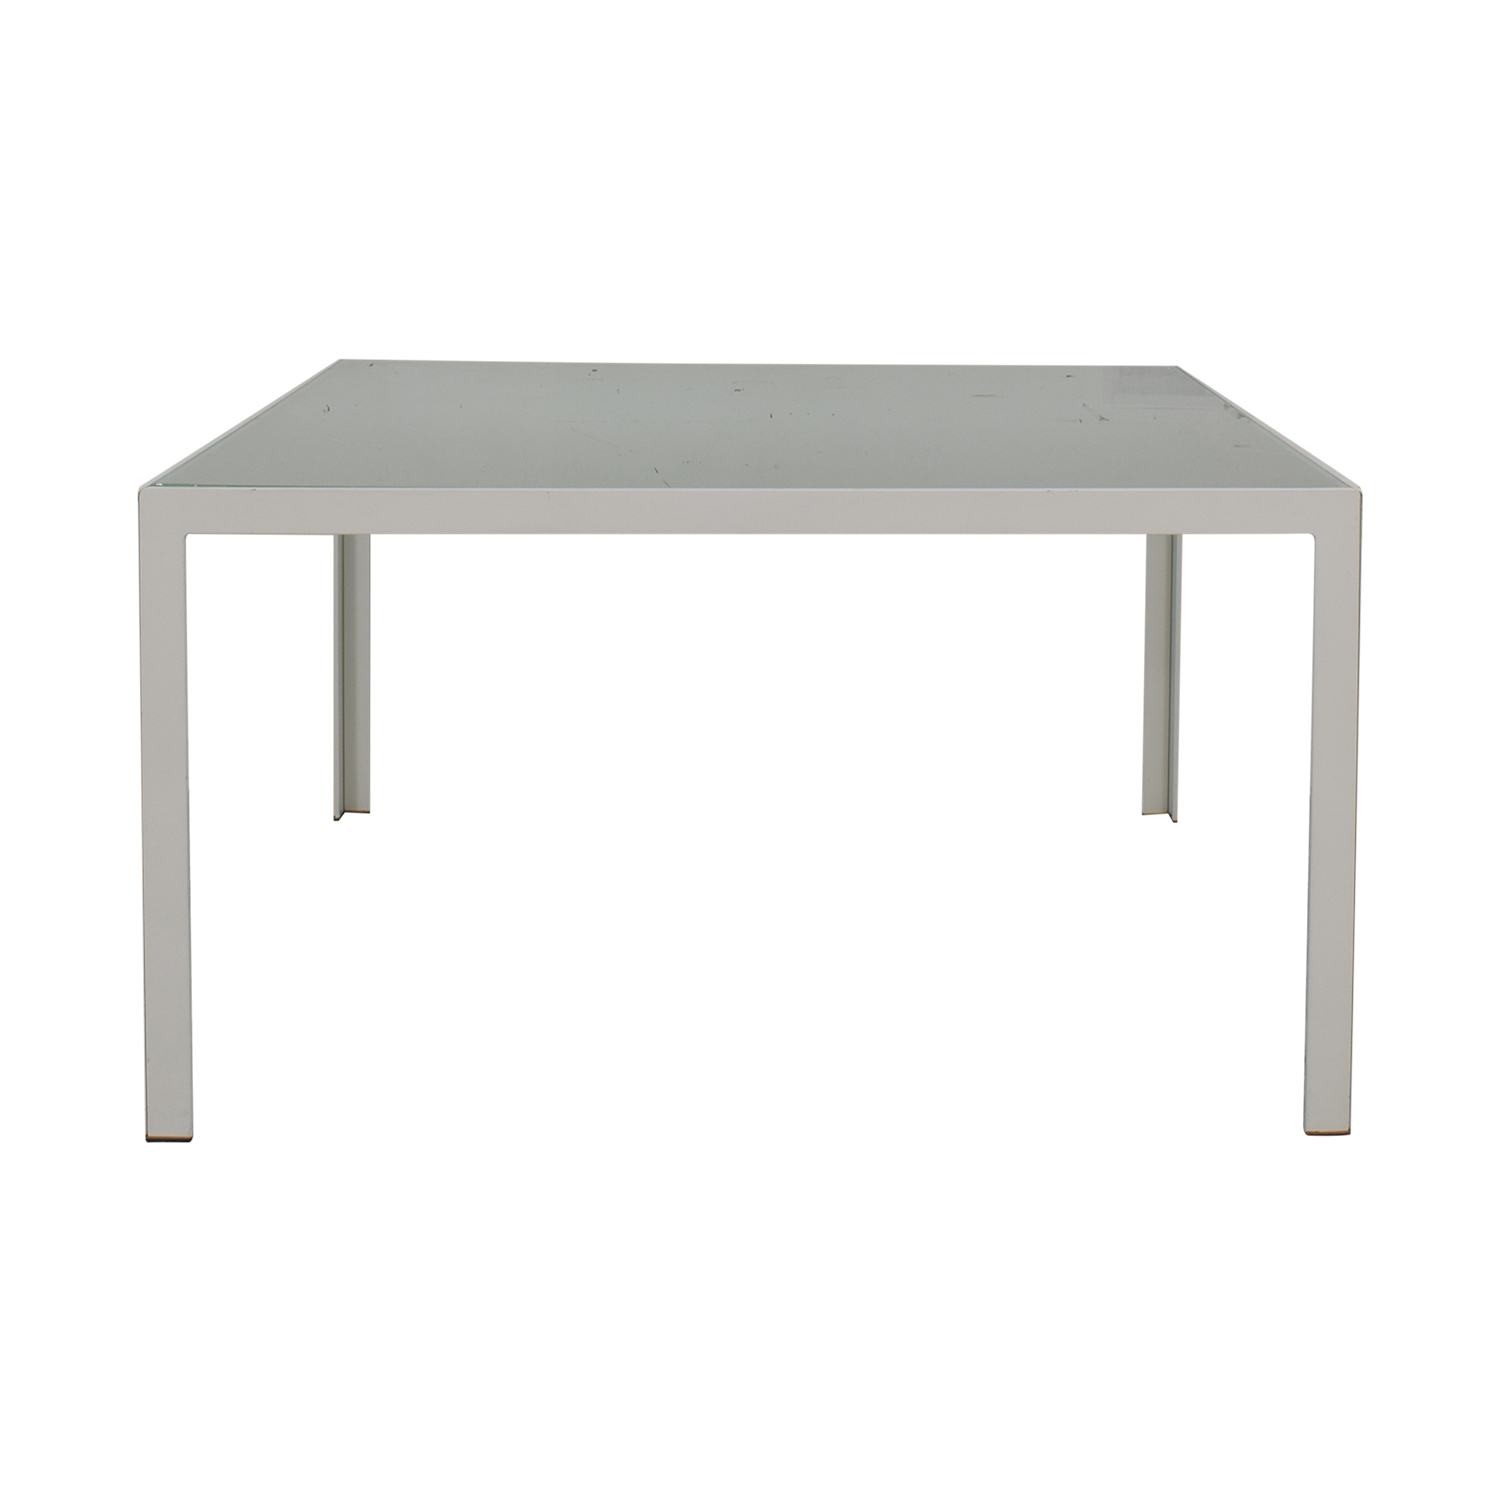 Monica Armani White and Glass Dining Table sale